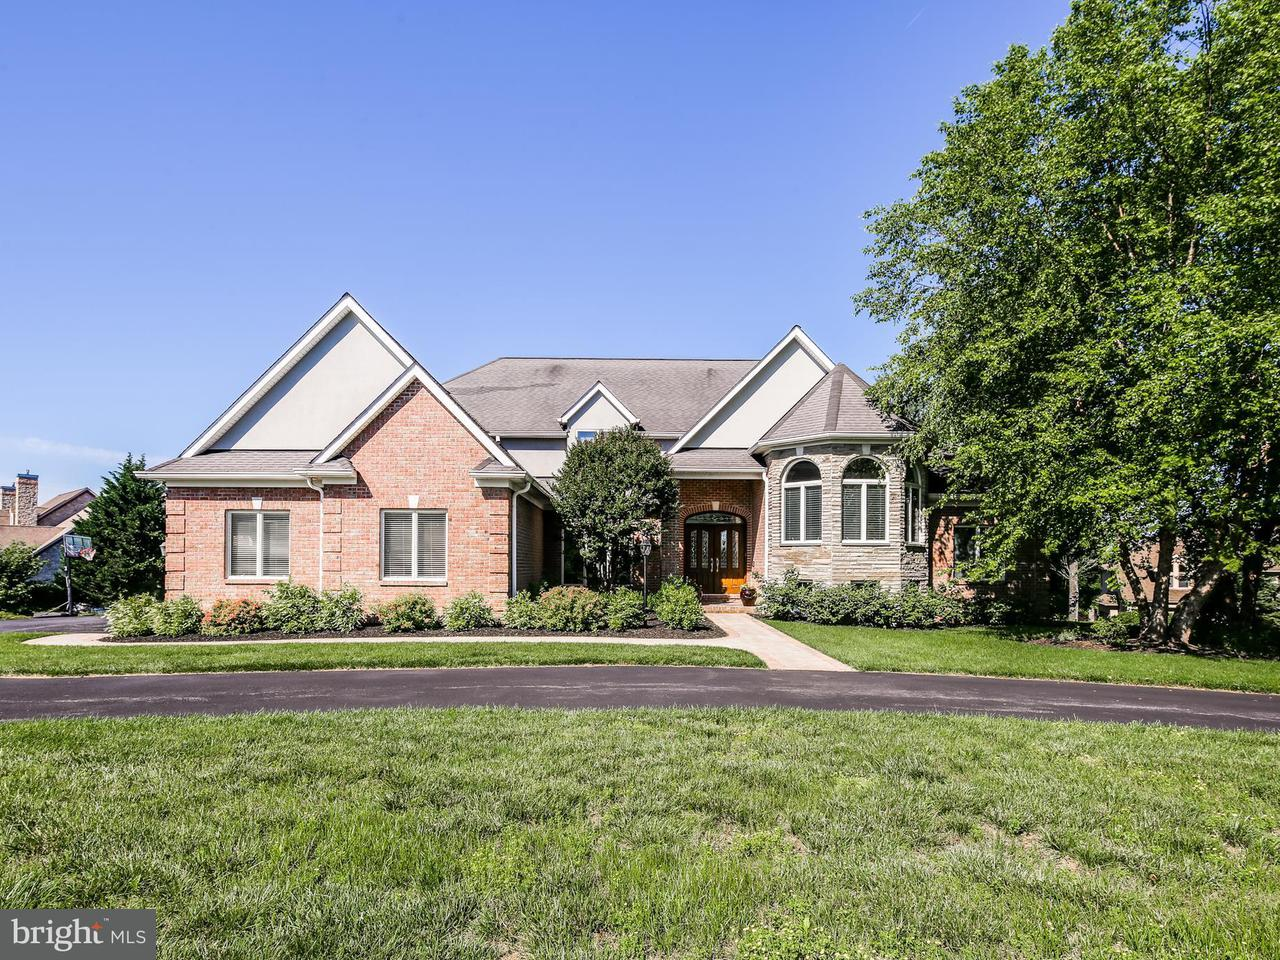 Single Family Home for Sale at 3601 Willow Birch Drive 3601 Willow Birch Drive Glenwood, Maryland 21738 United States